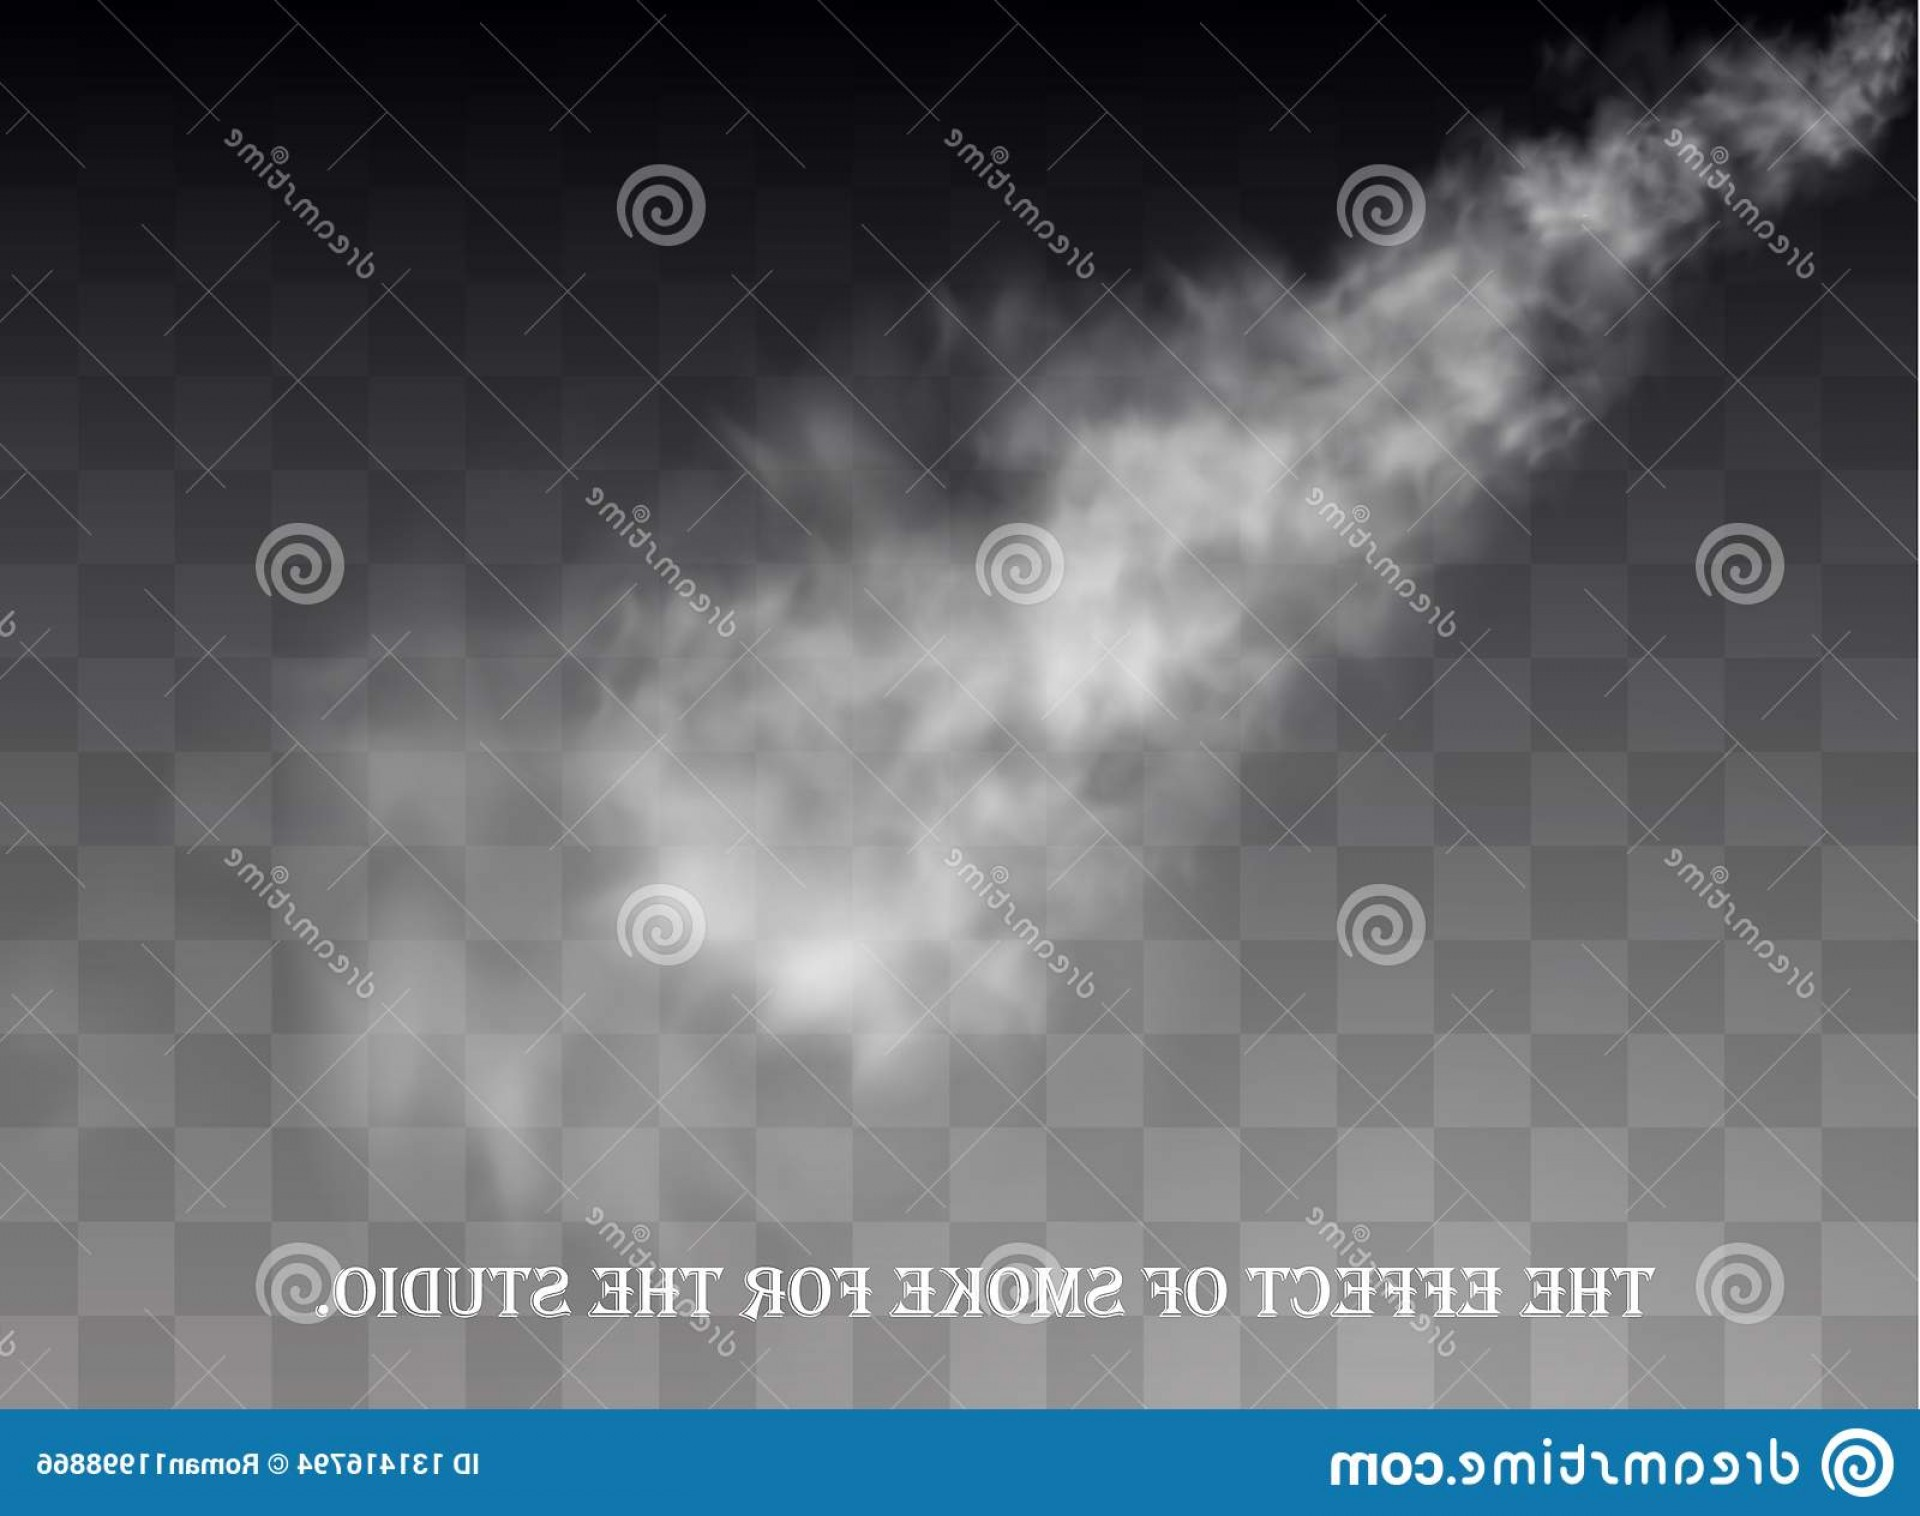 Billow Smoke Vector: Transparent Special Effect Stands Out Fog Smoke White Cloud Vector Fog Smog Vector Illustration White Gradient Image